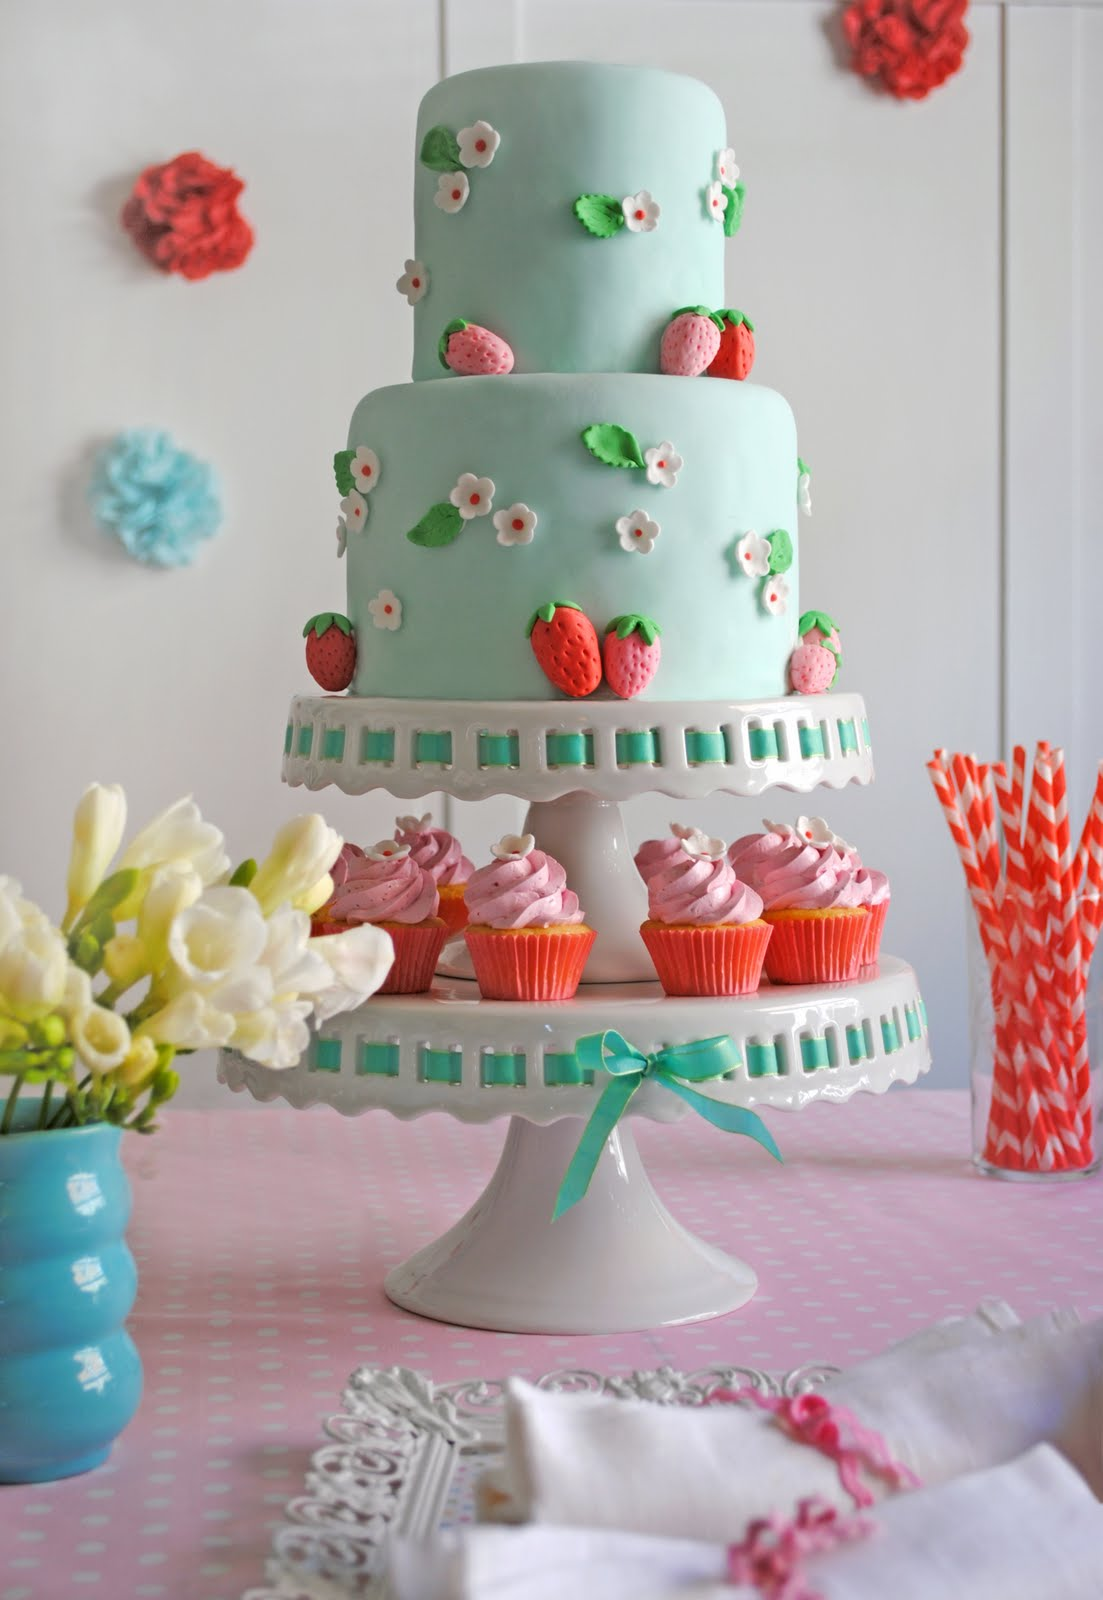 pinkbluestrawberrybirthdaycakebirthdaypartythemesribboncake